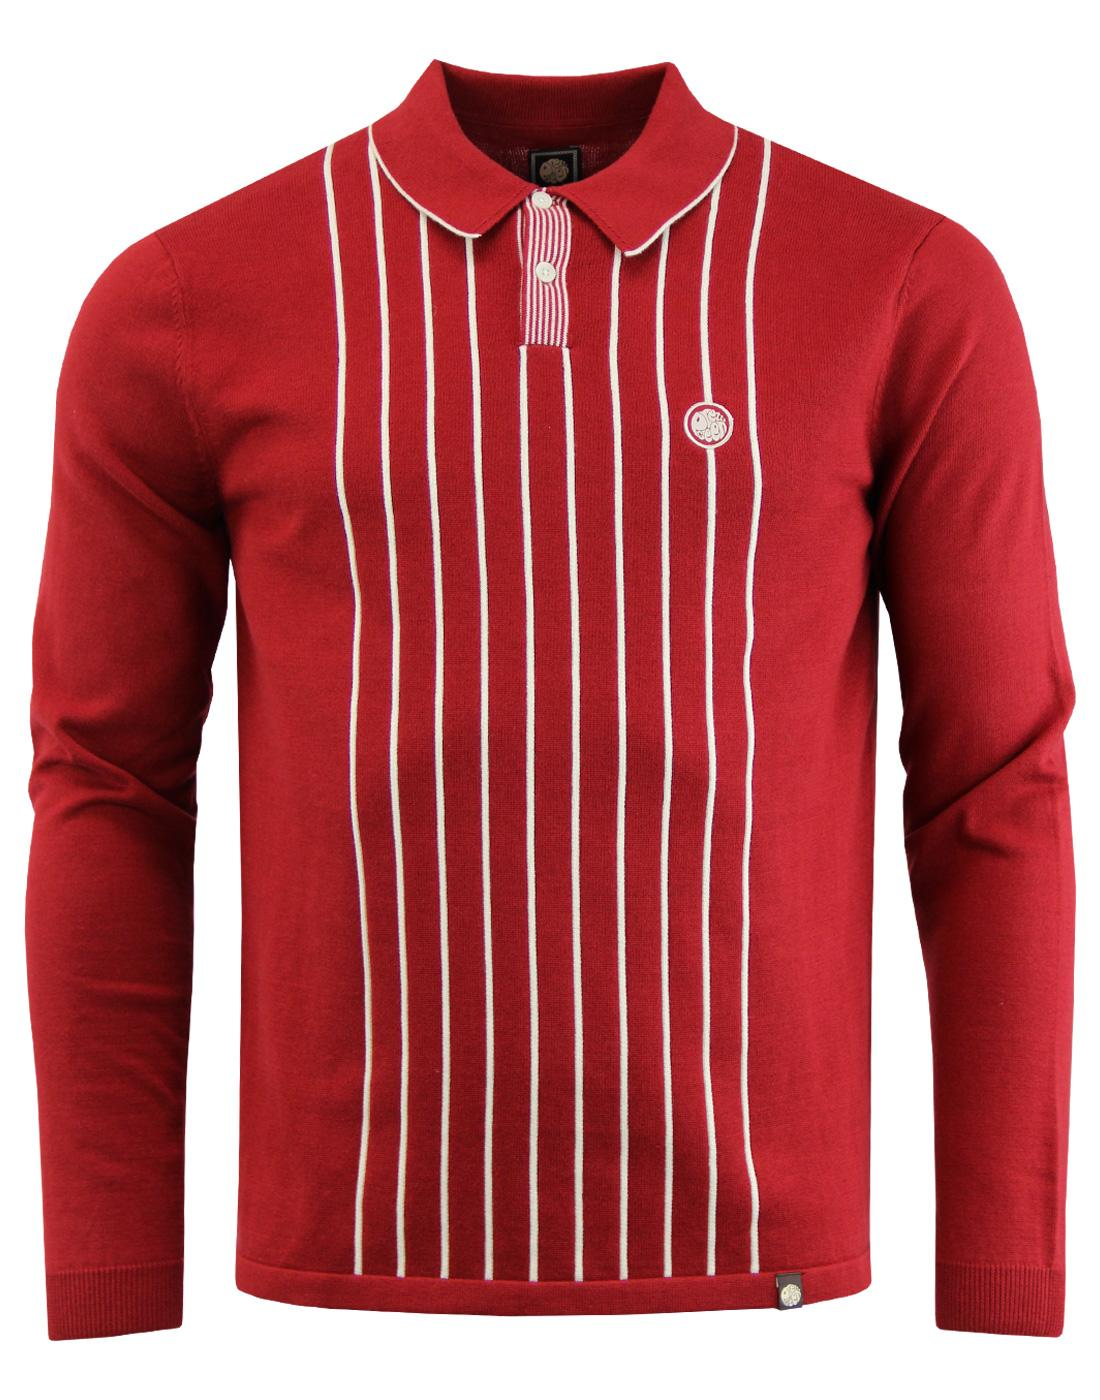 Whittle PRETTY GREEN Mod Stripe Knit Polo Top RED